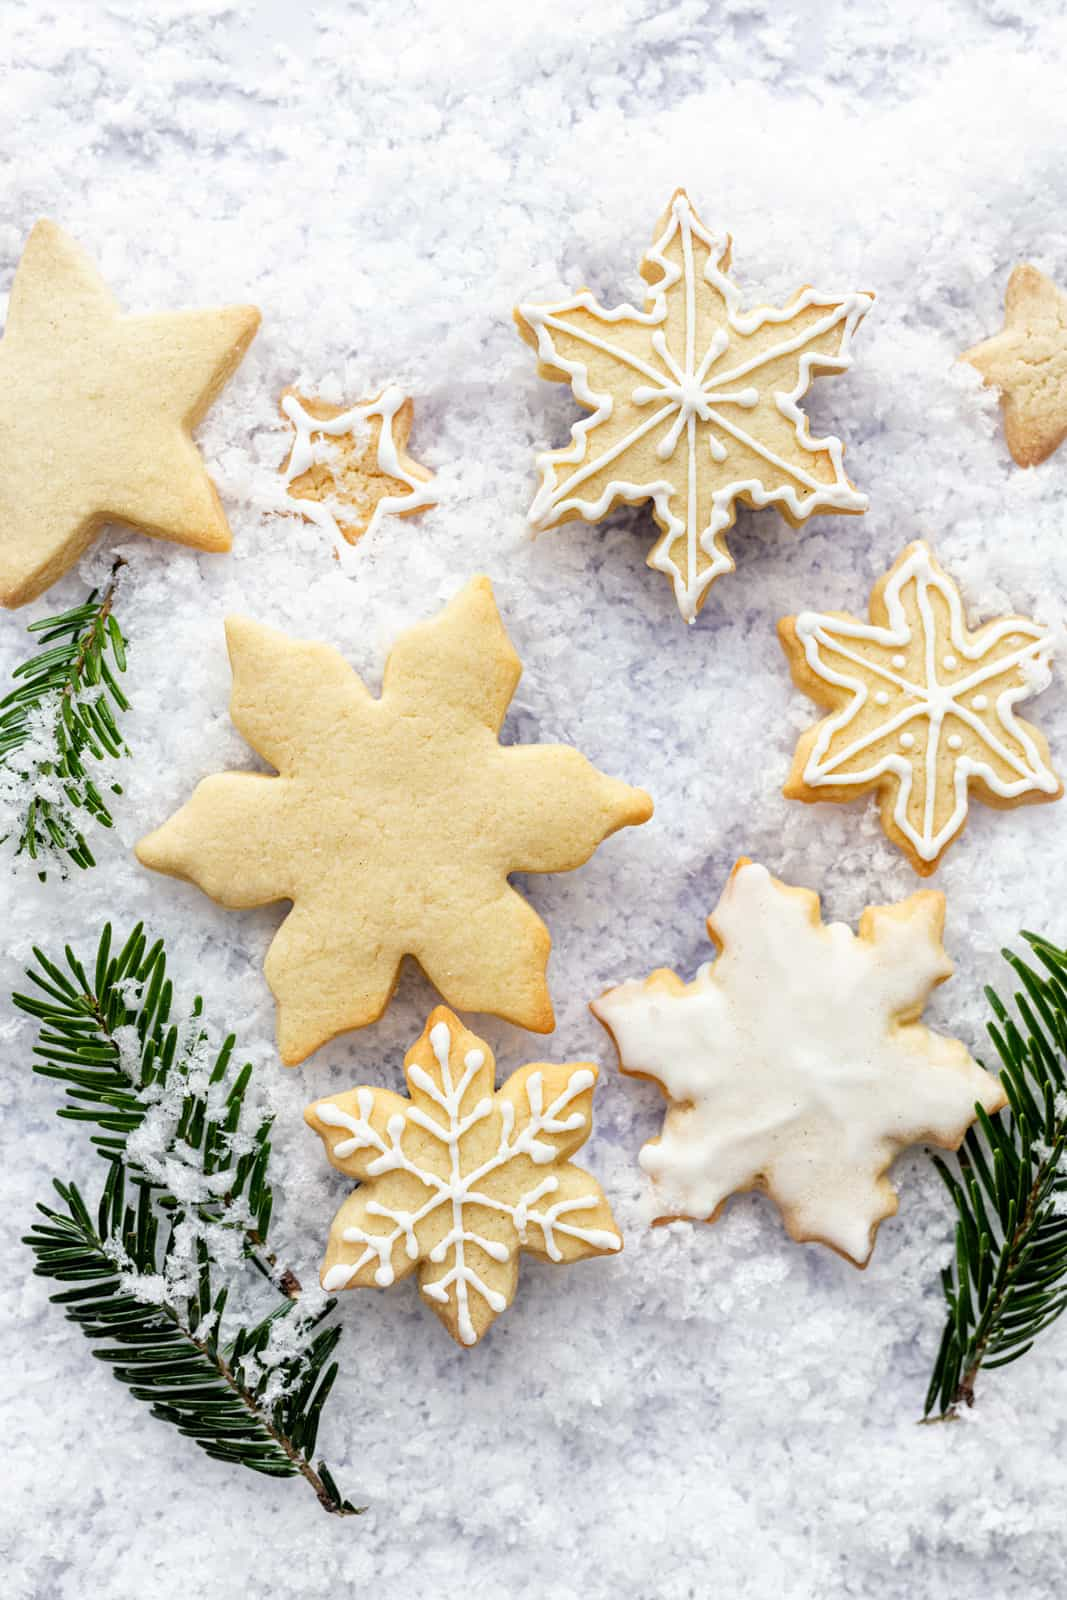 Christmas iced biscuits shaped like snowflakes